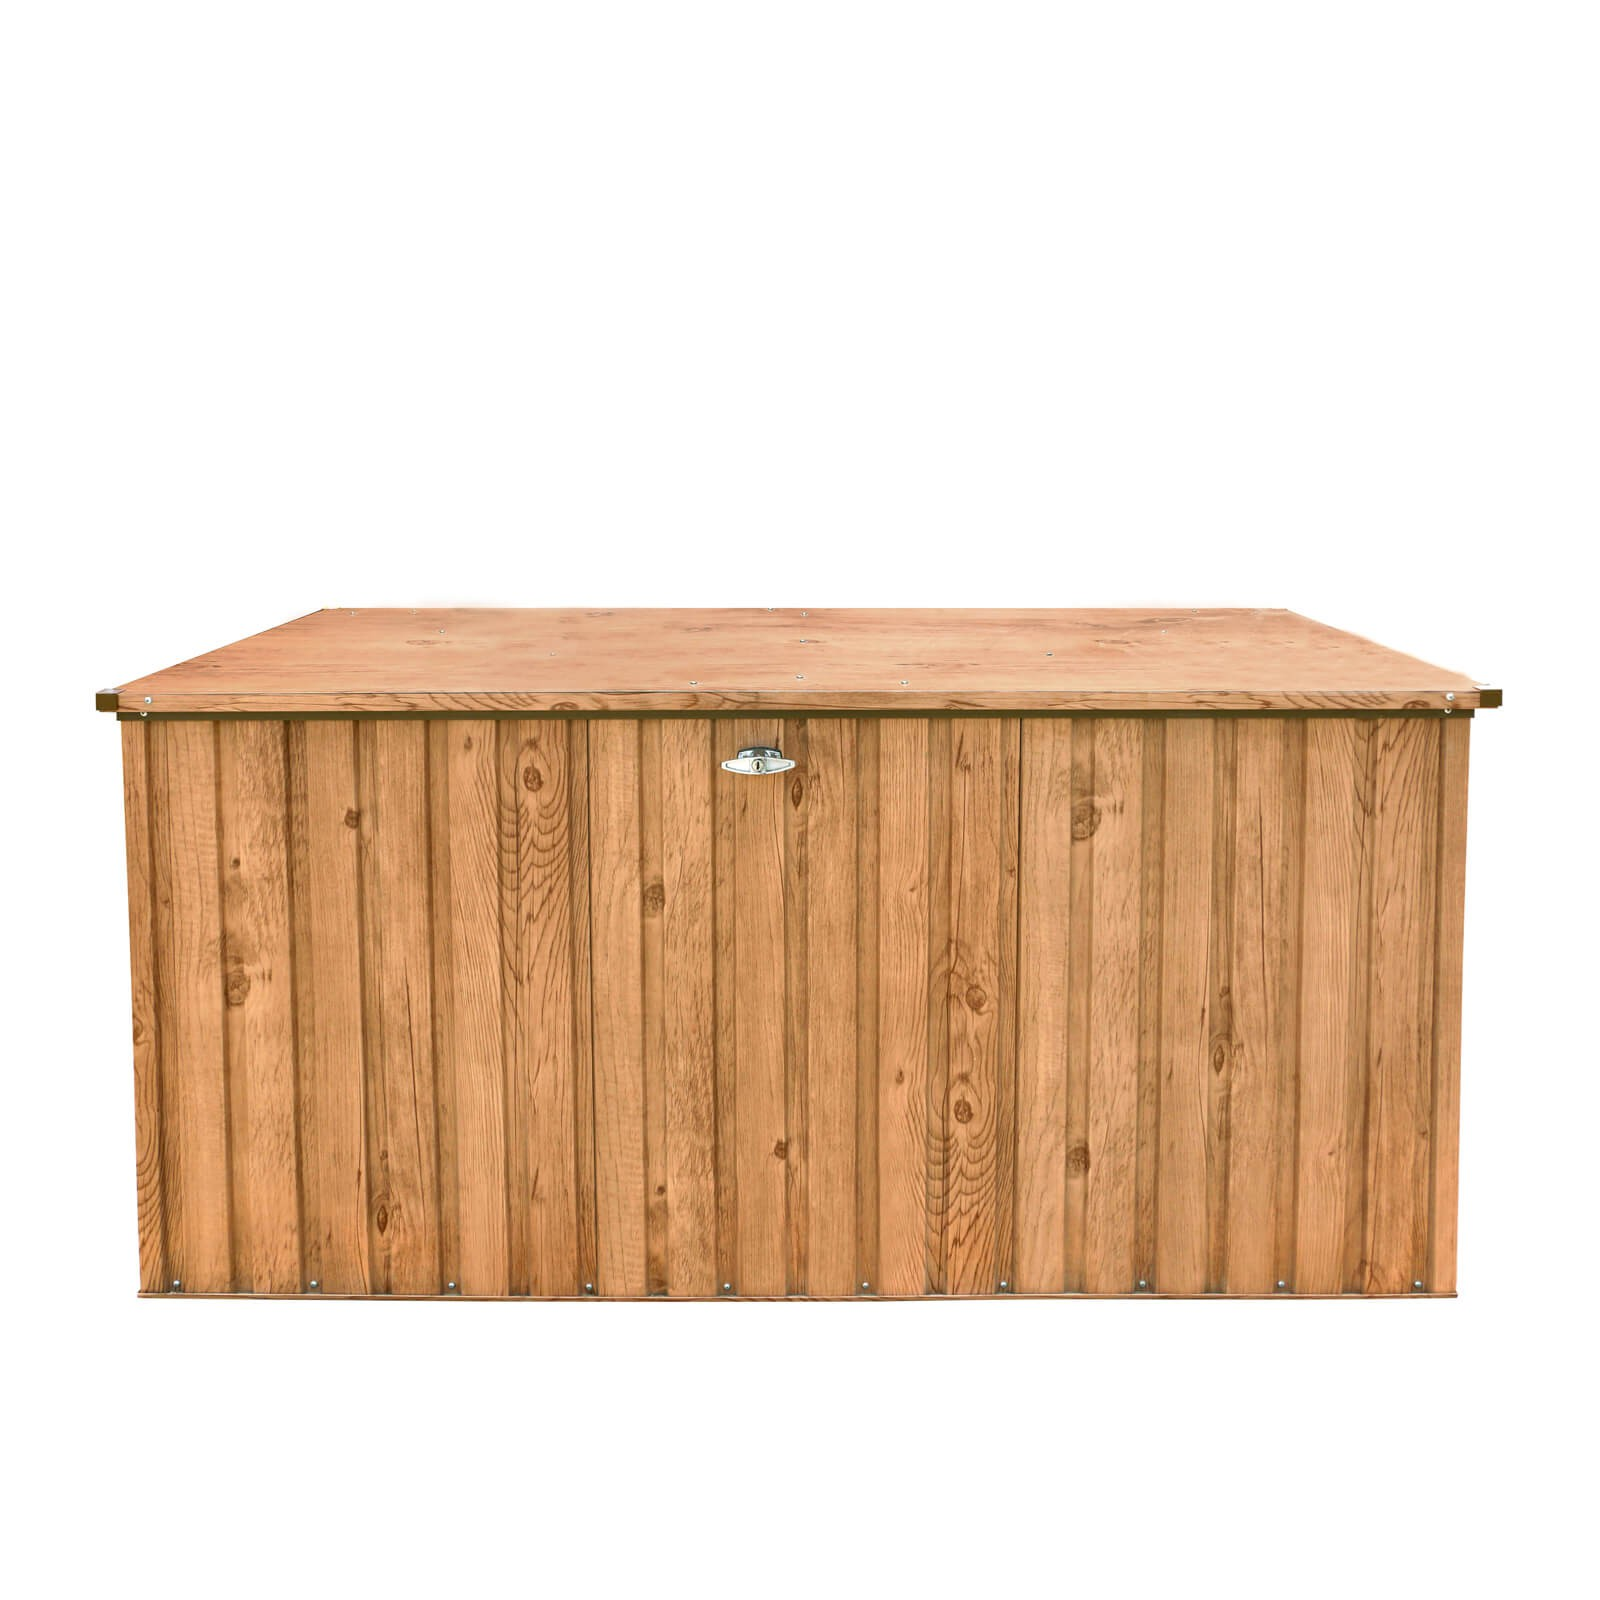 metall ger tebox gartentruhe gartenbox aufbewahrungsbox 190x90 cm holz dekor ebay. Black Bedroom Furniture Sets. Home Design Ideas